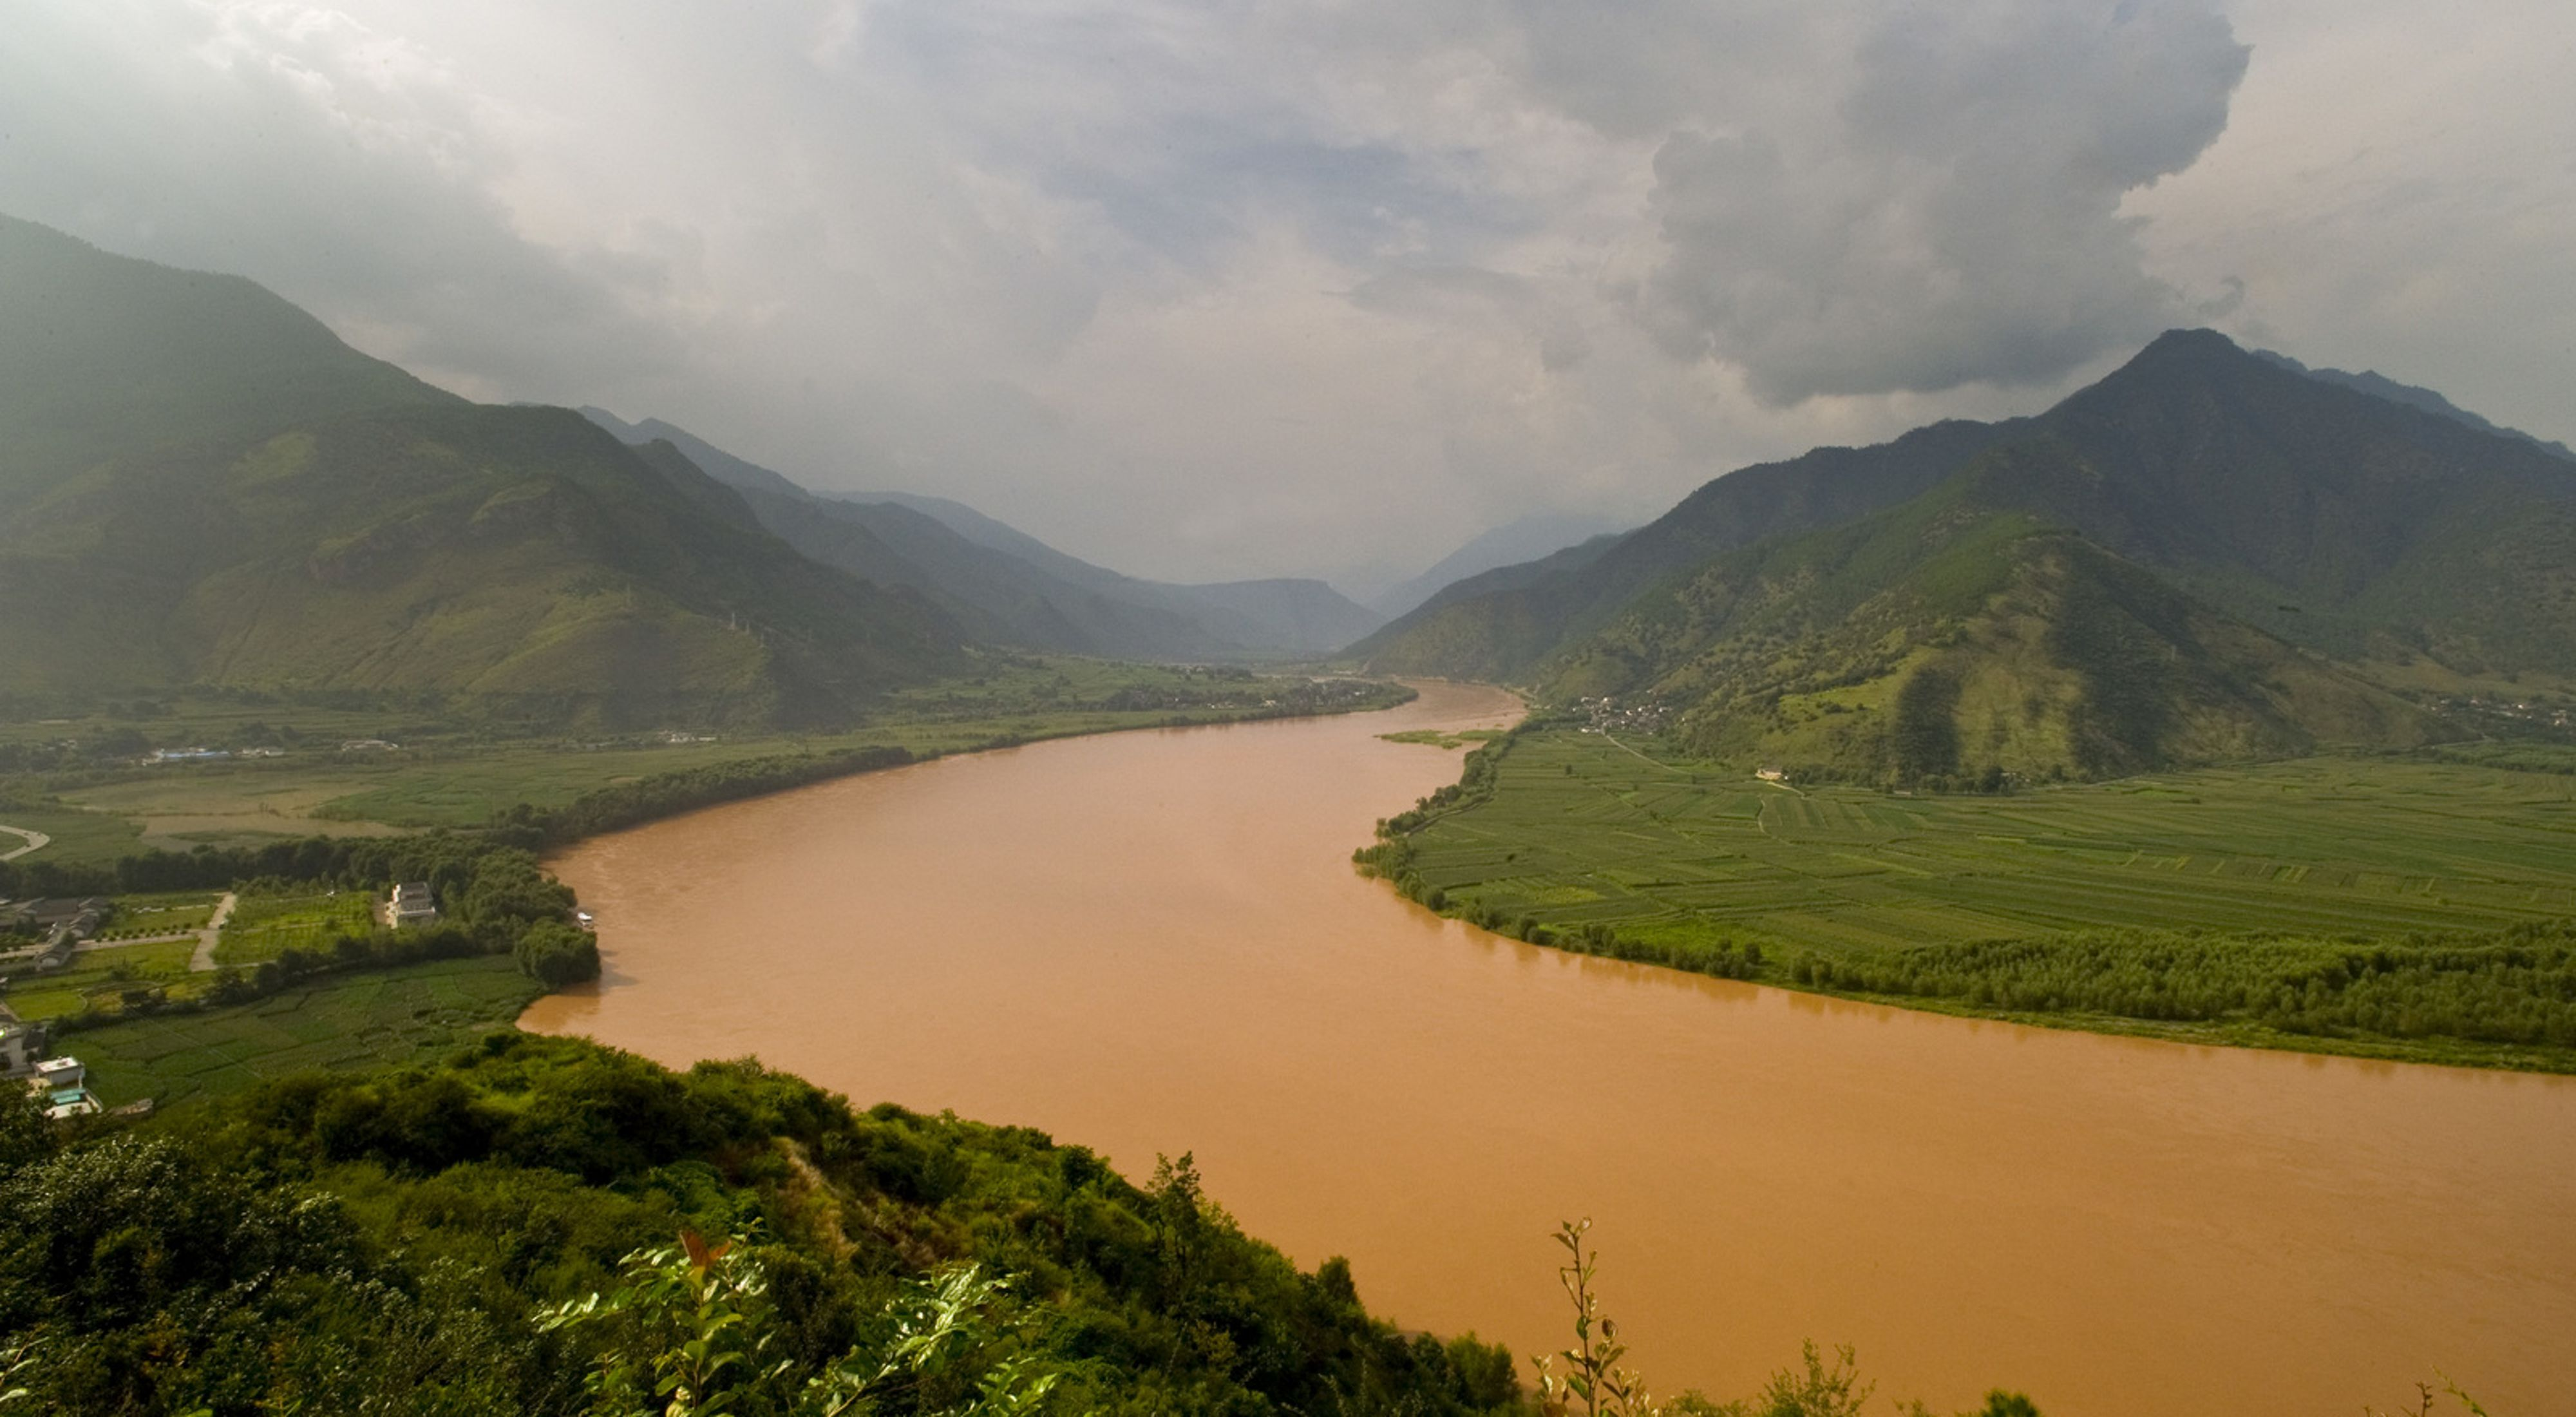 Recent rain turns the river a muddy-brown, viewed at a bend in the upper Yangtze River (Chang Jiang), Yunnan province, southwestern China. The Conservancy is working with the Chinese government to increase protection of Yunnan's natural areas by establishing a system of national parks.